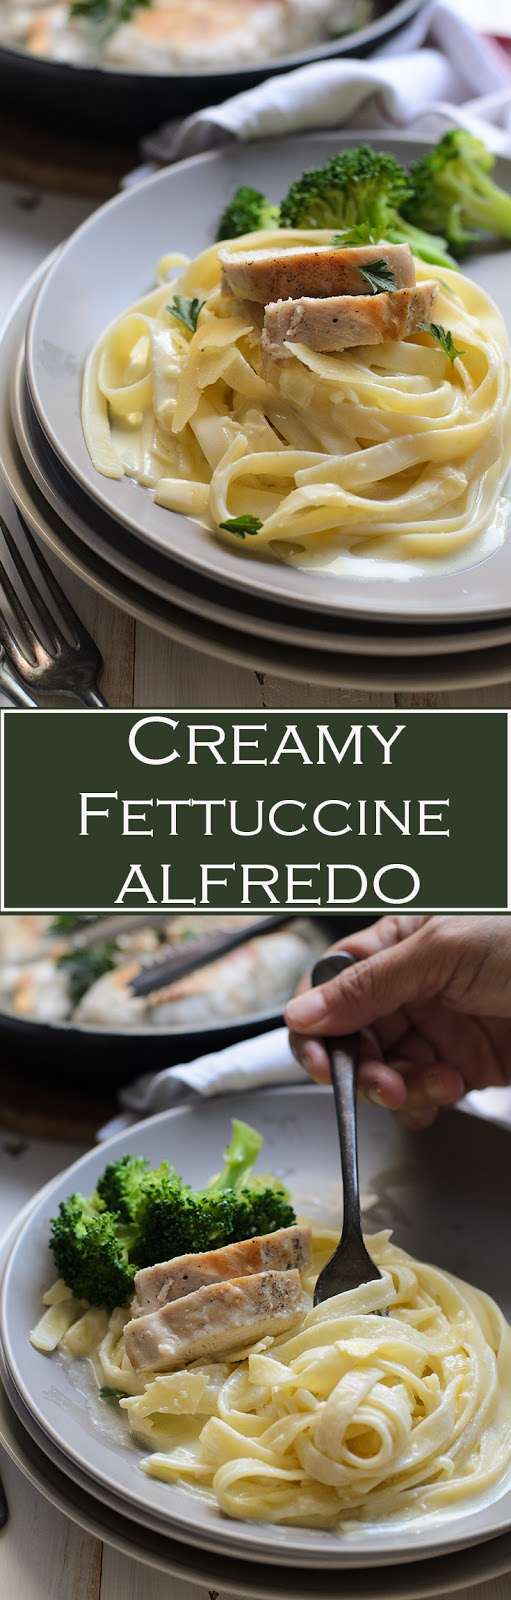 Creamy Fettuccine Alfredo recipe. Creamy and tasty Alfredo sauce using parmesan and mozzarella cheese.  Serve with fettuccine, pan-seared chicken and steam broccoli